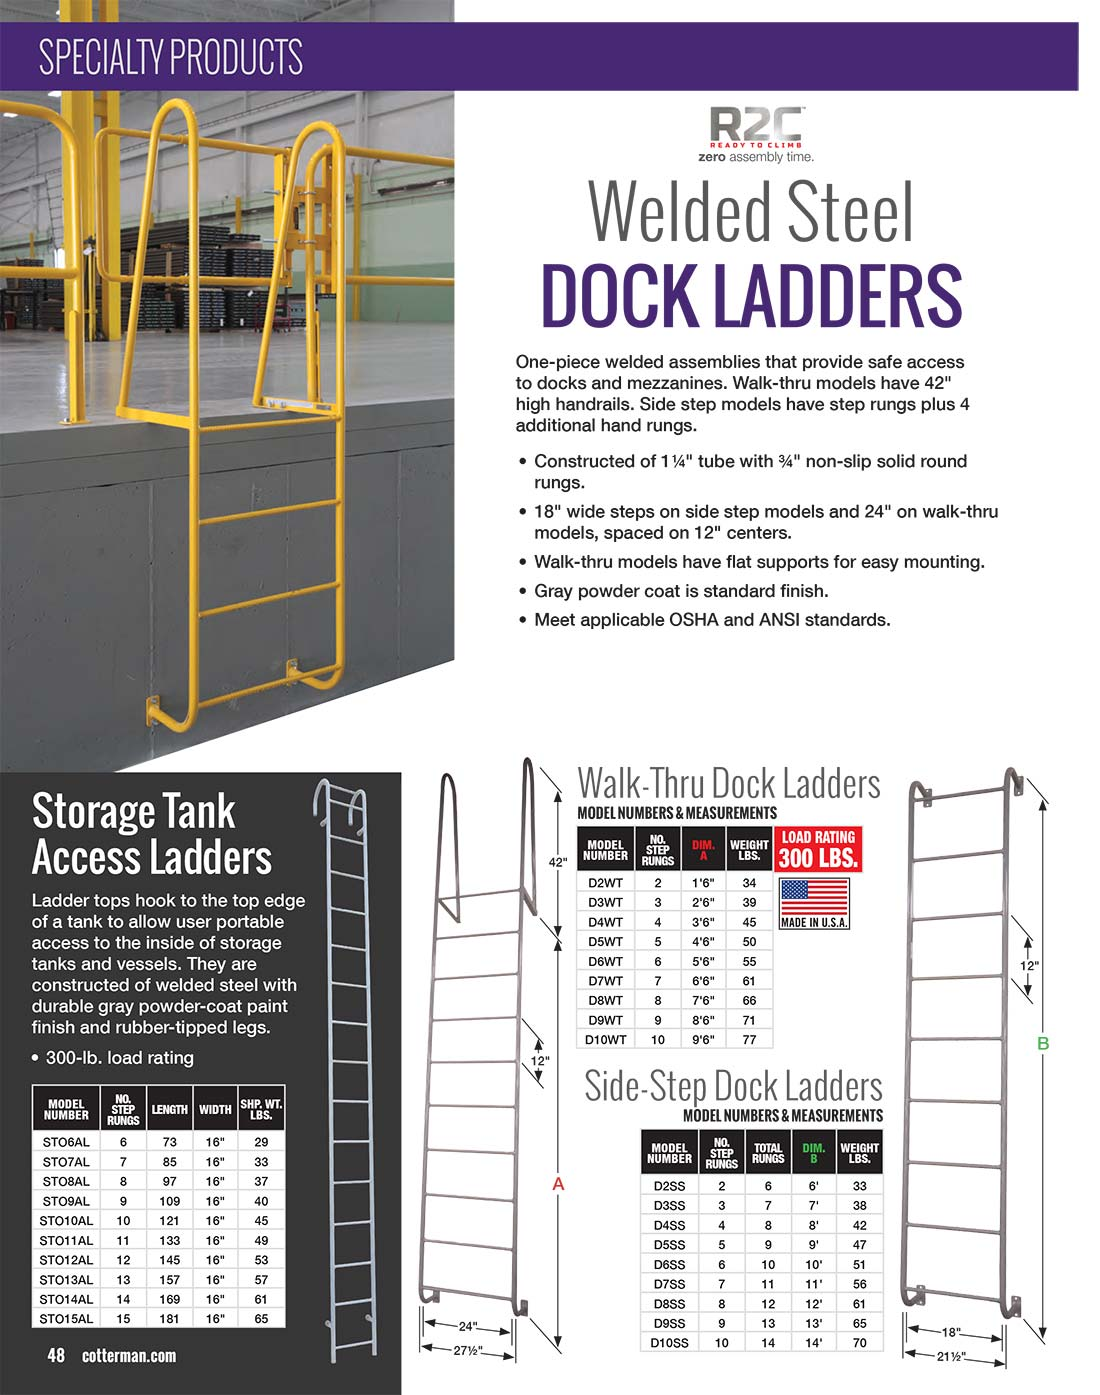 Cotterman Dock Ladders file & Product Information